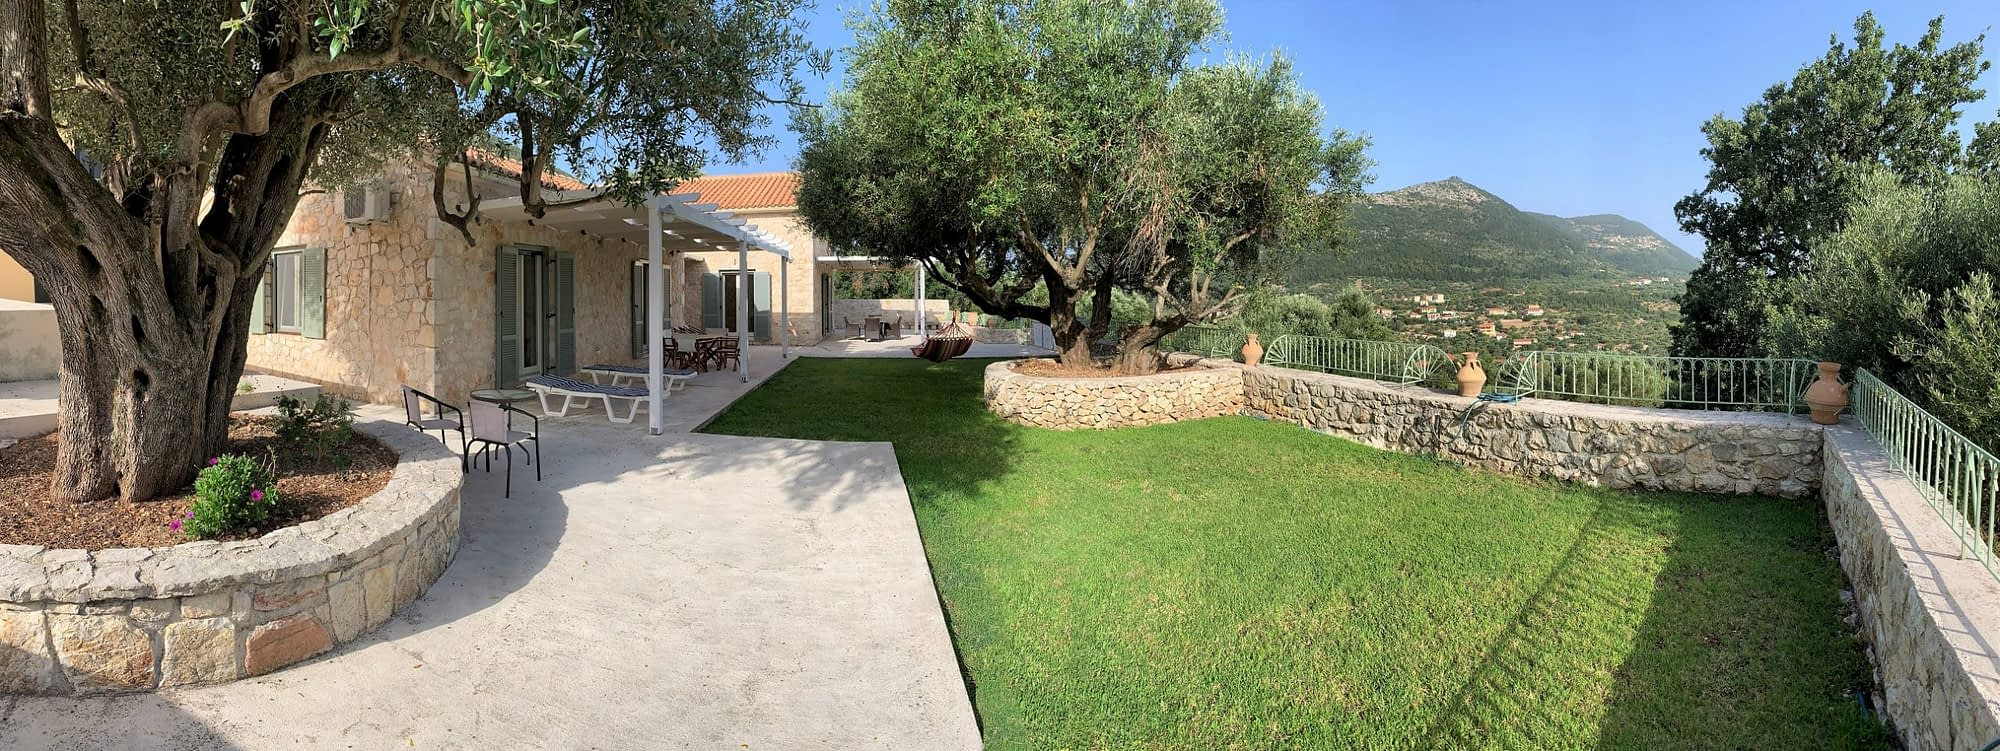 Outdoor area in villa for rent Ithaca Greece, Stavros